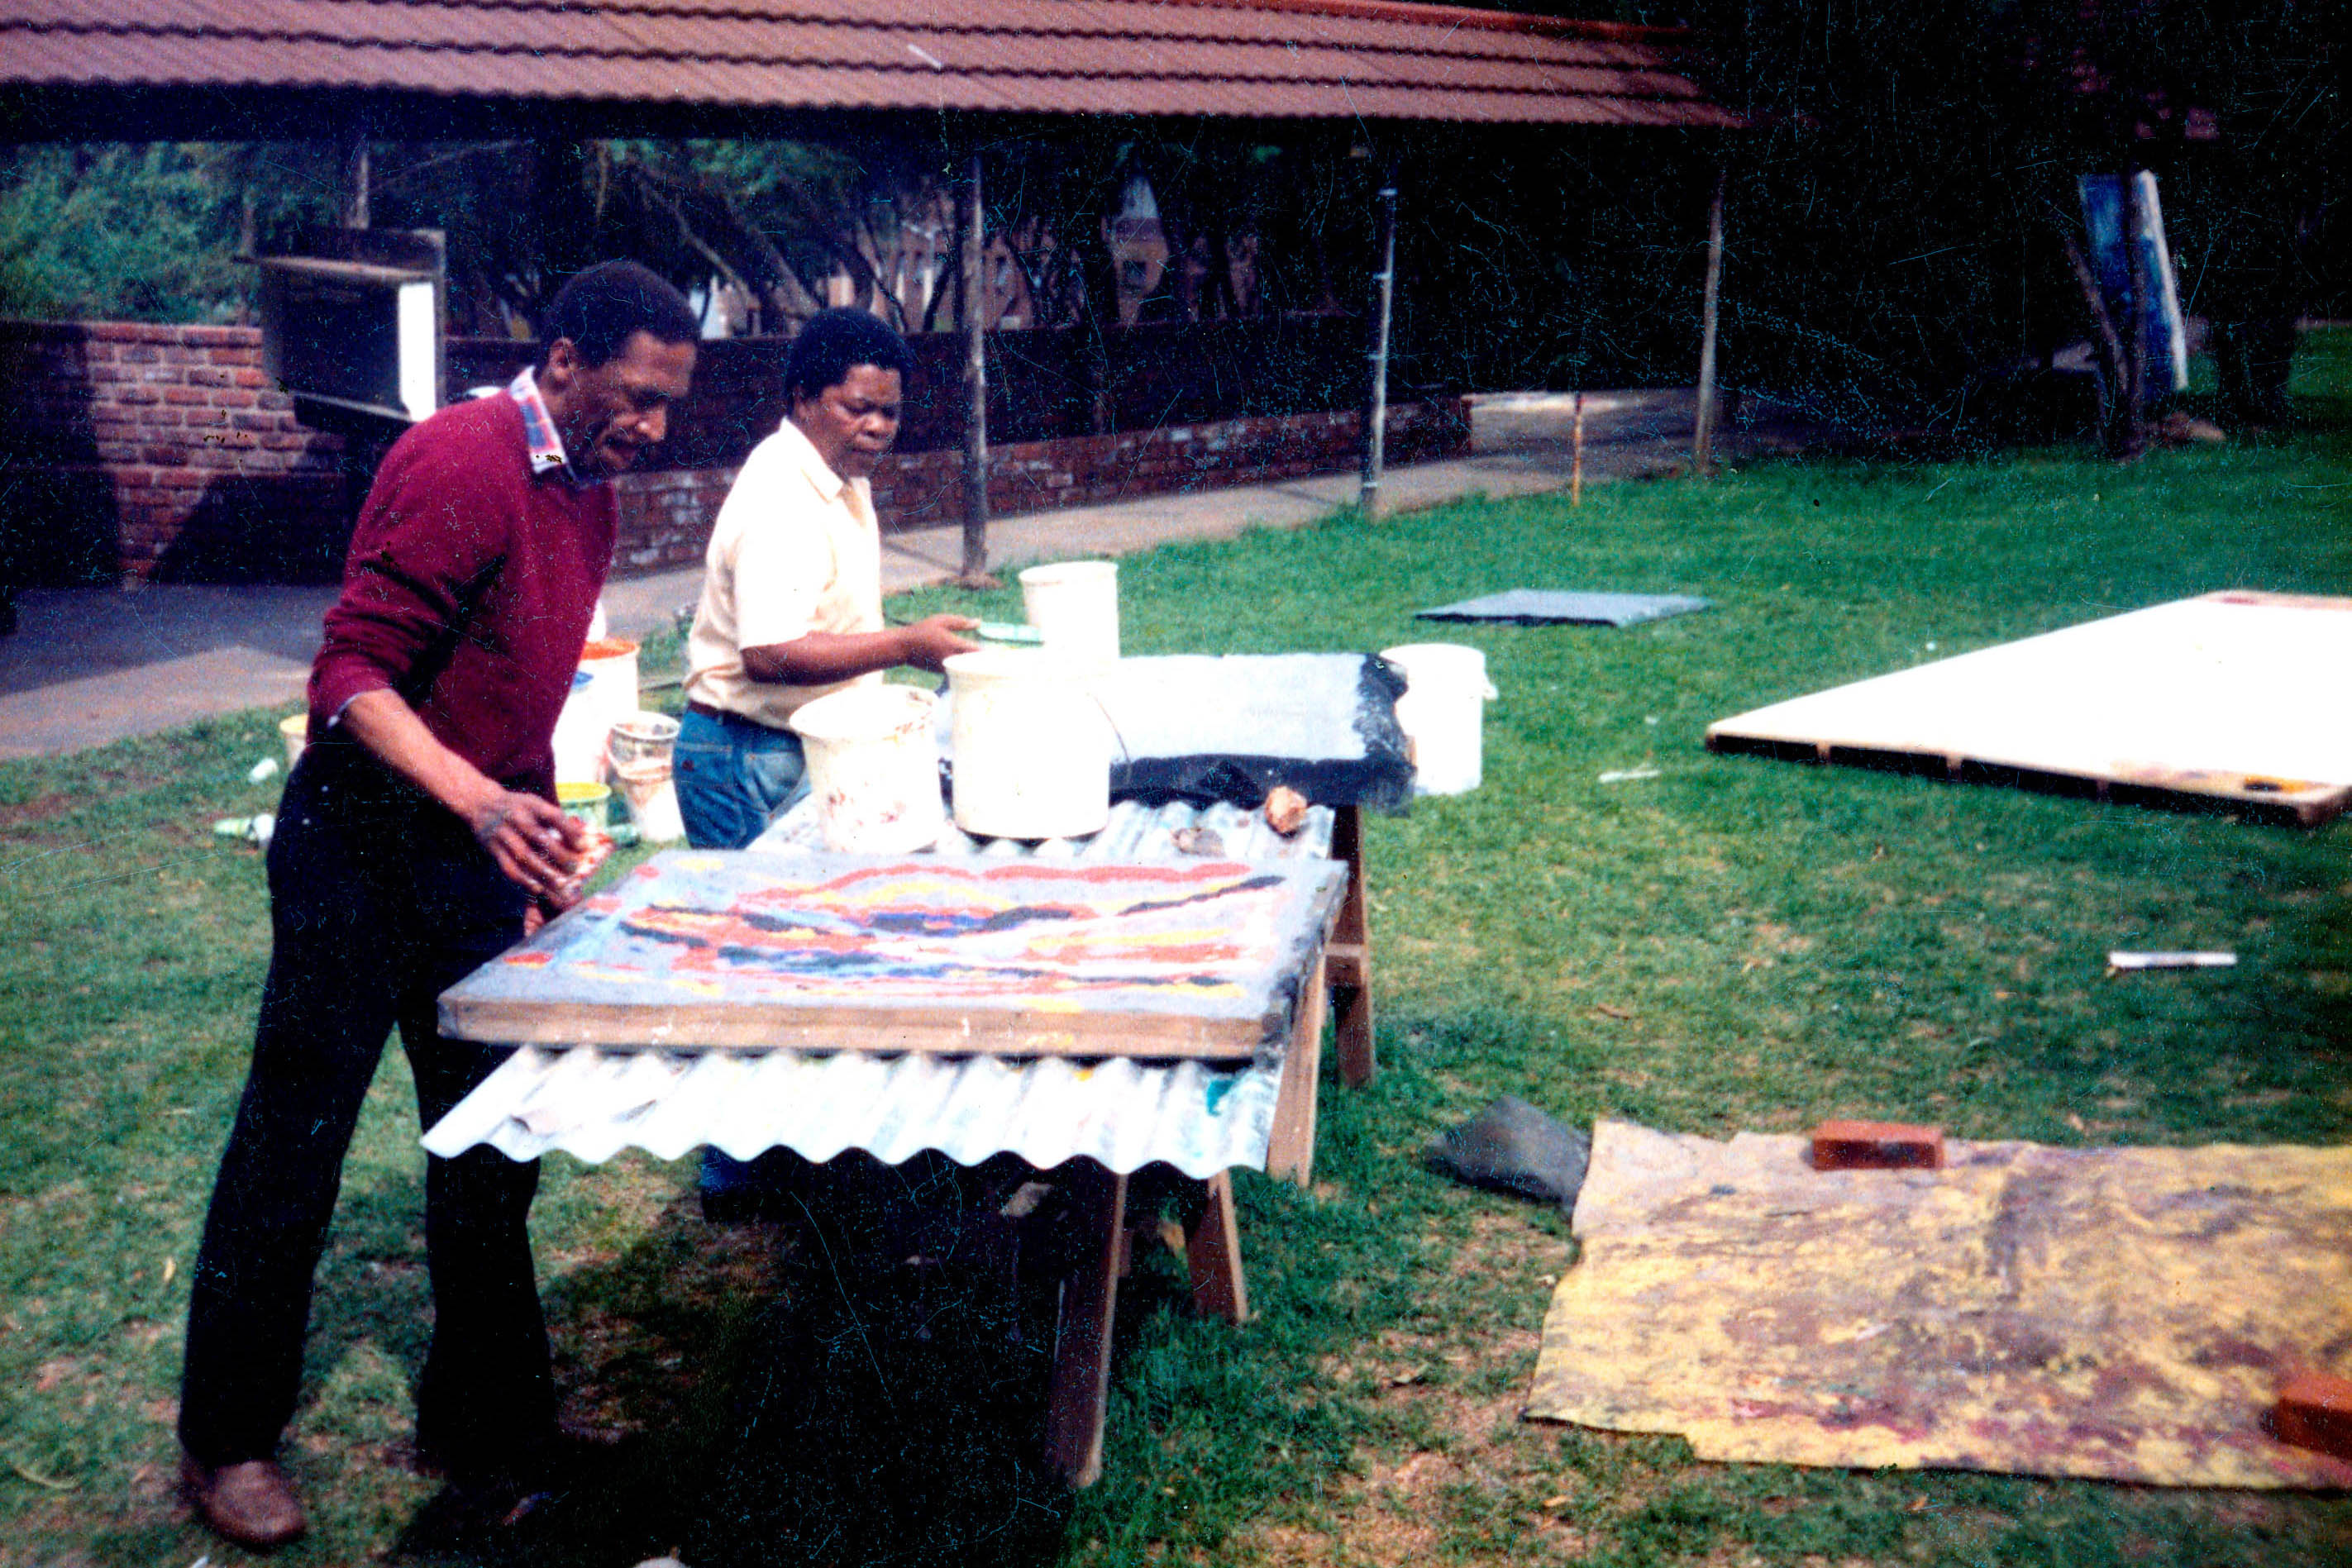 Circa 2000: From left, David Koloane and Durant Sihlali at the latter's paper-making workshop in Fleurhof, Johannesburg. (Photograph: Supplied)